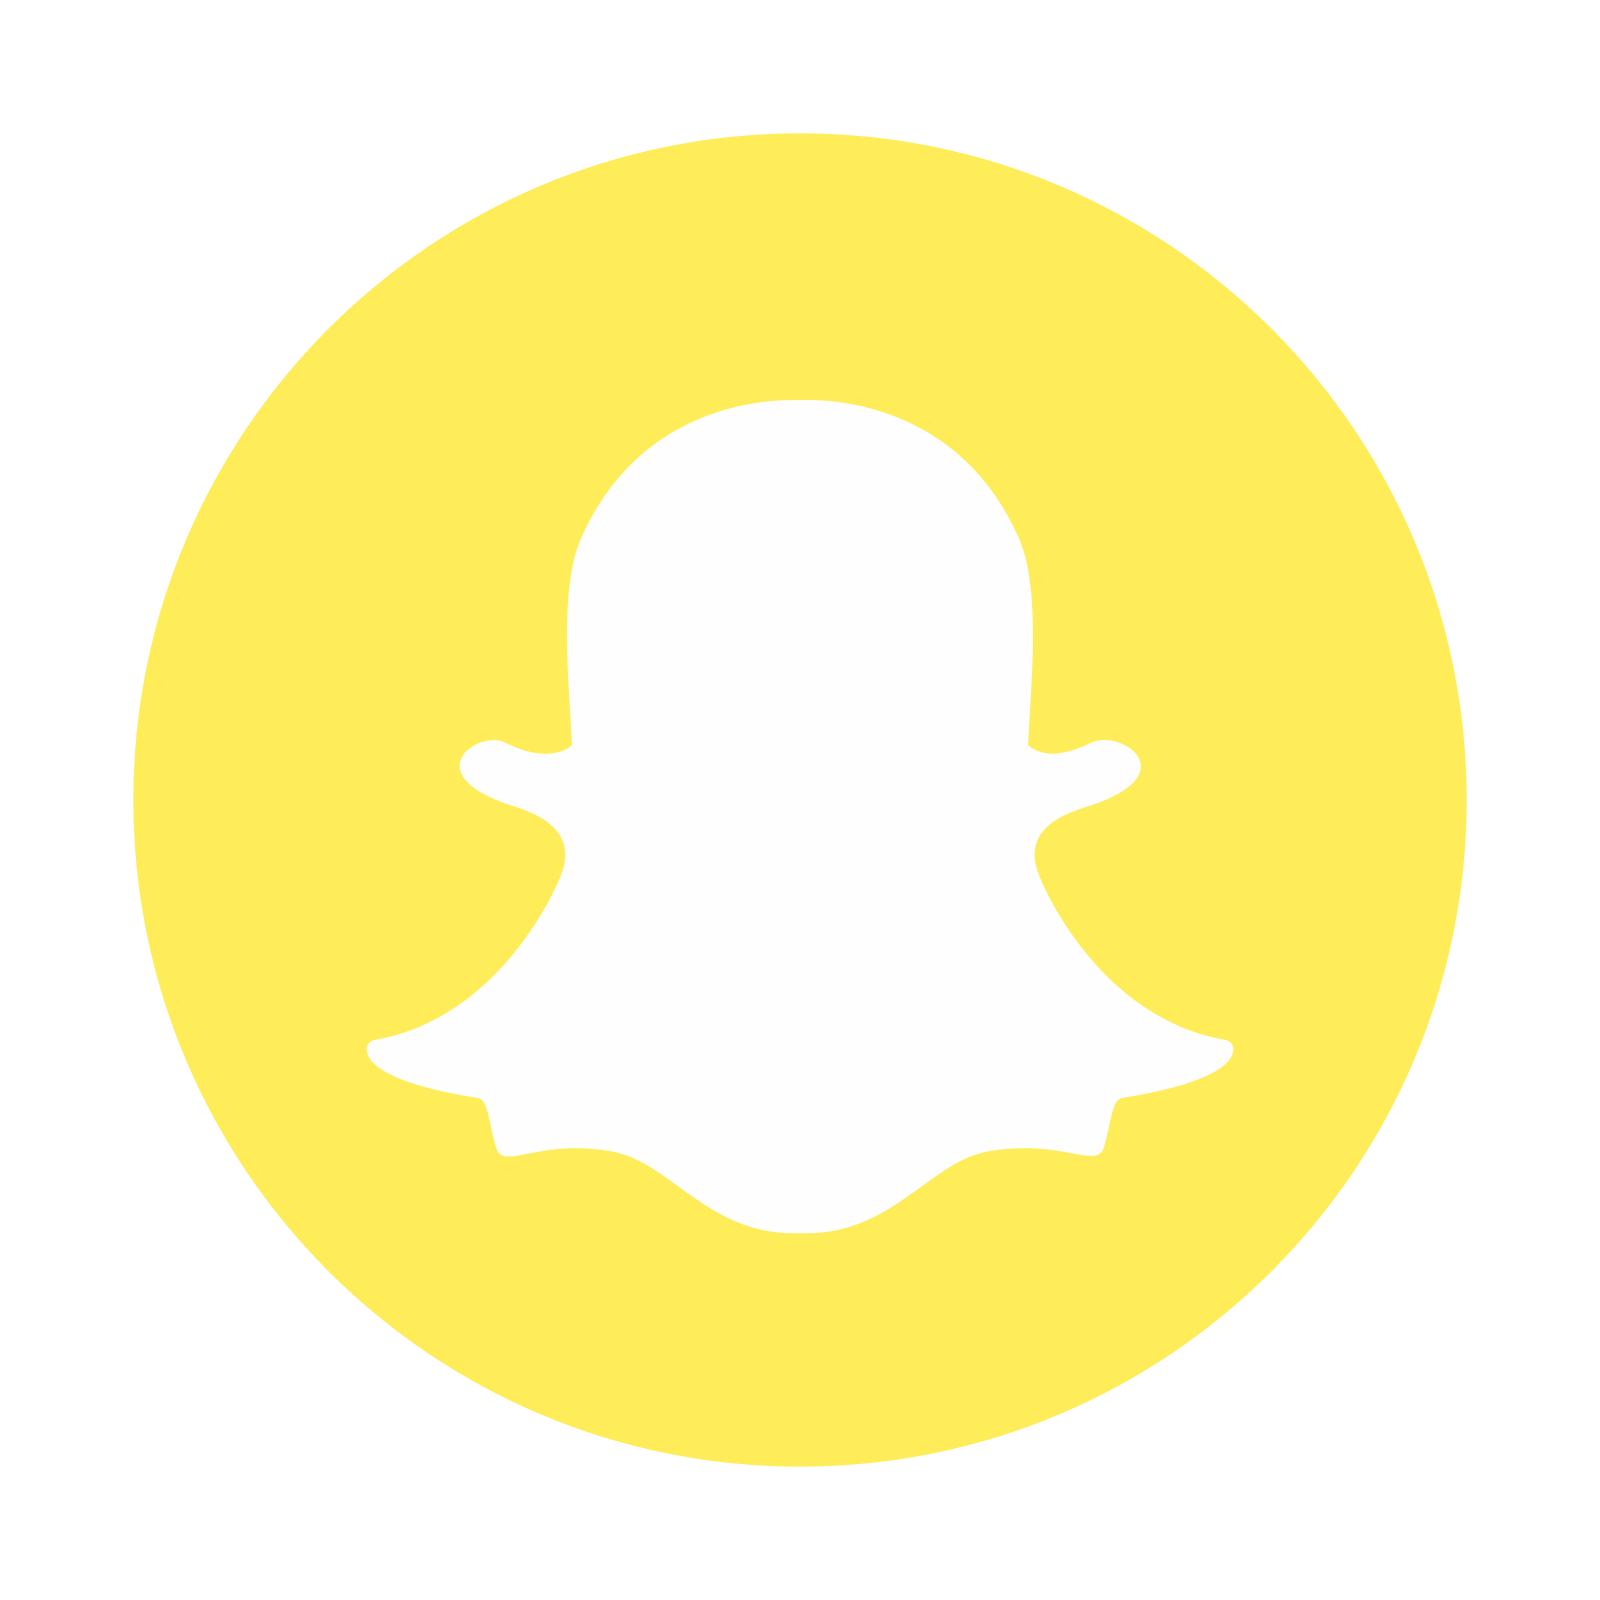 Circled logo free download. Snapchat icon png